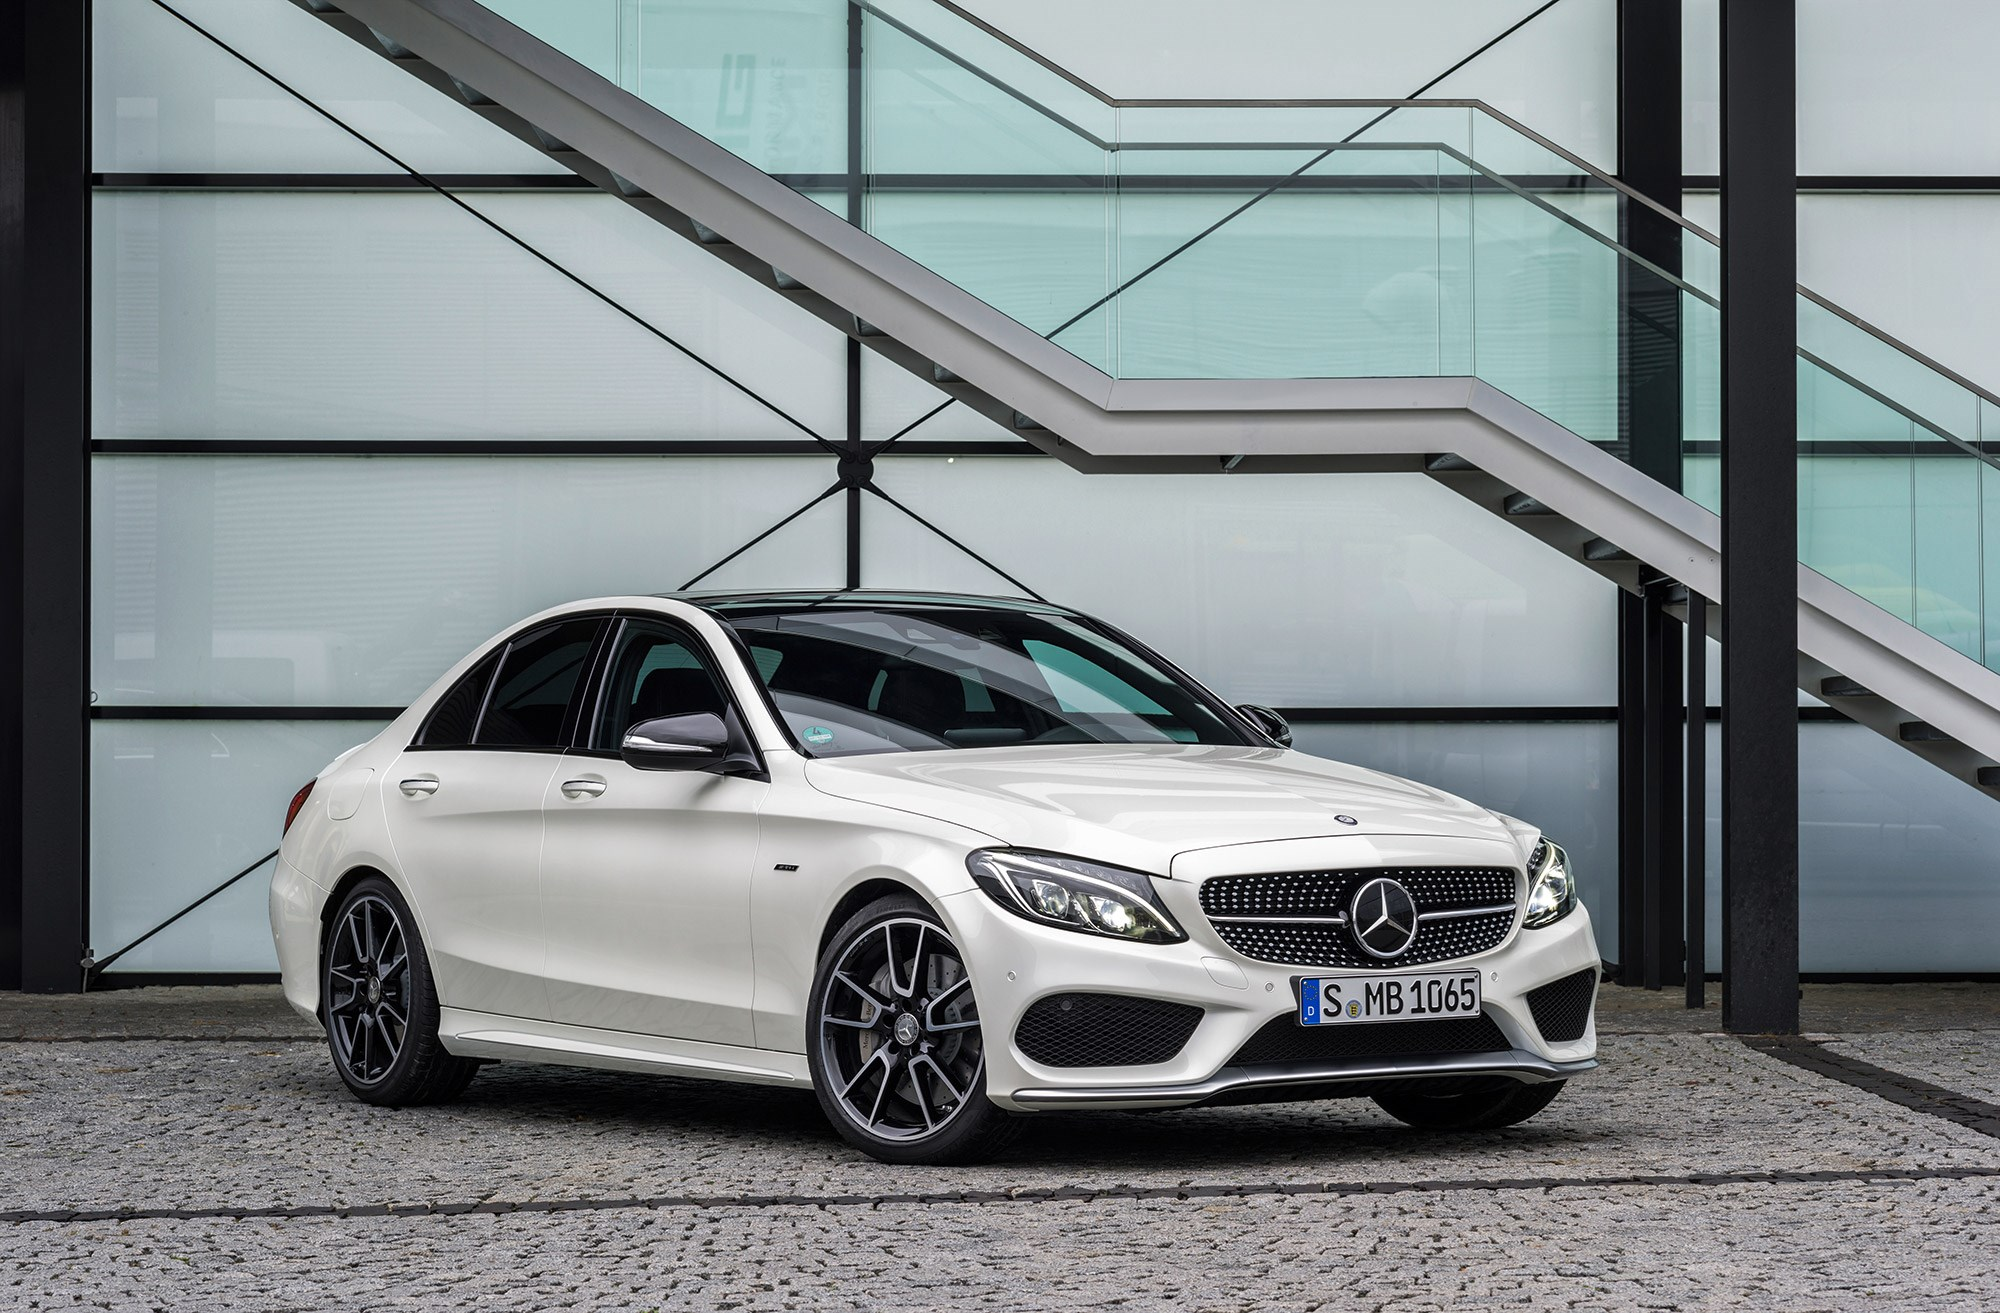 mercedes c450 amg 4matic 2015 review by car magazine. Black Bedroom Furniture Sets. Home Design Ideas